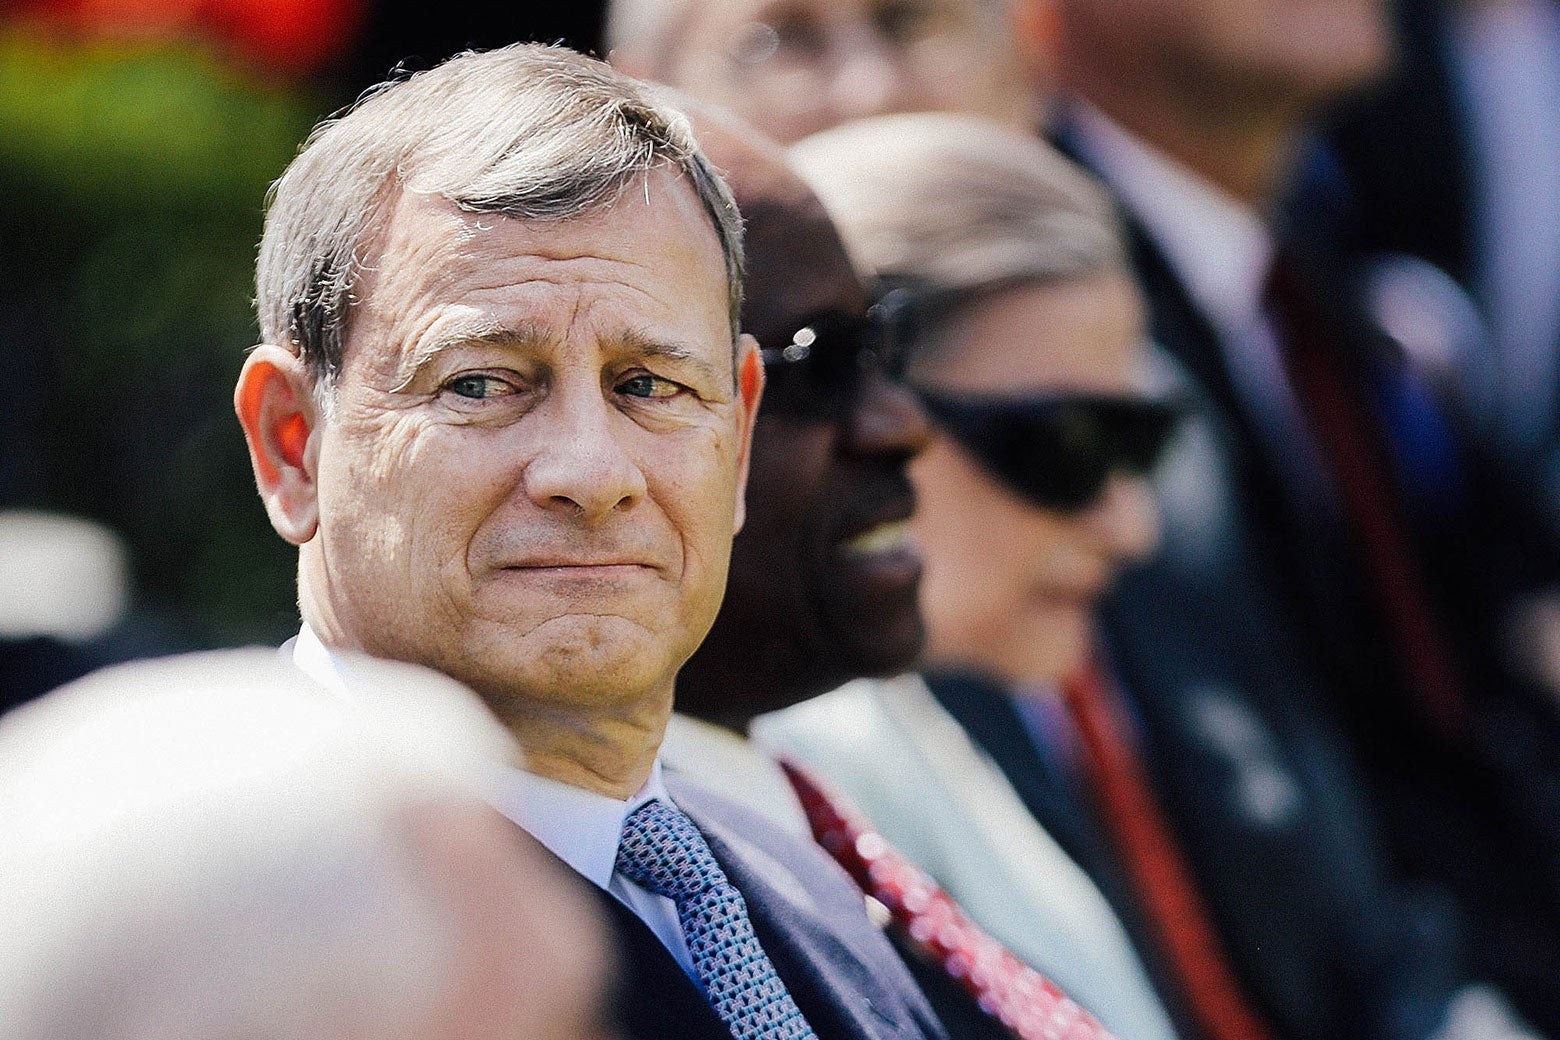 Chief Justice John Roberts sitting down